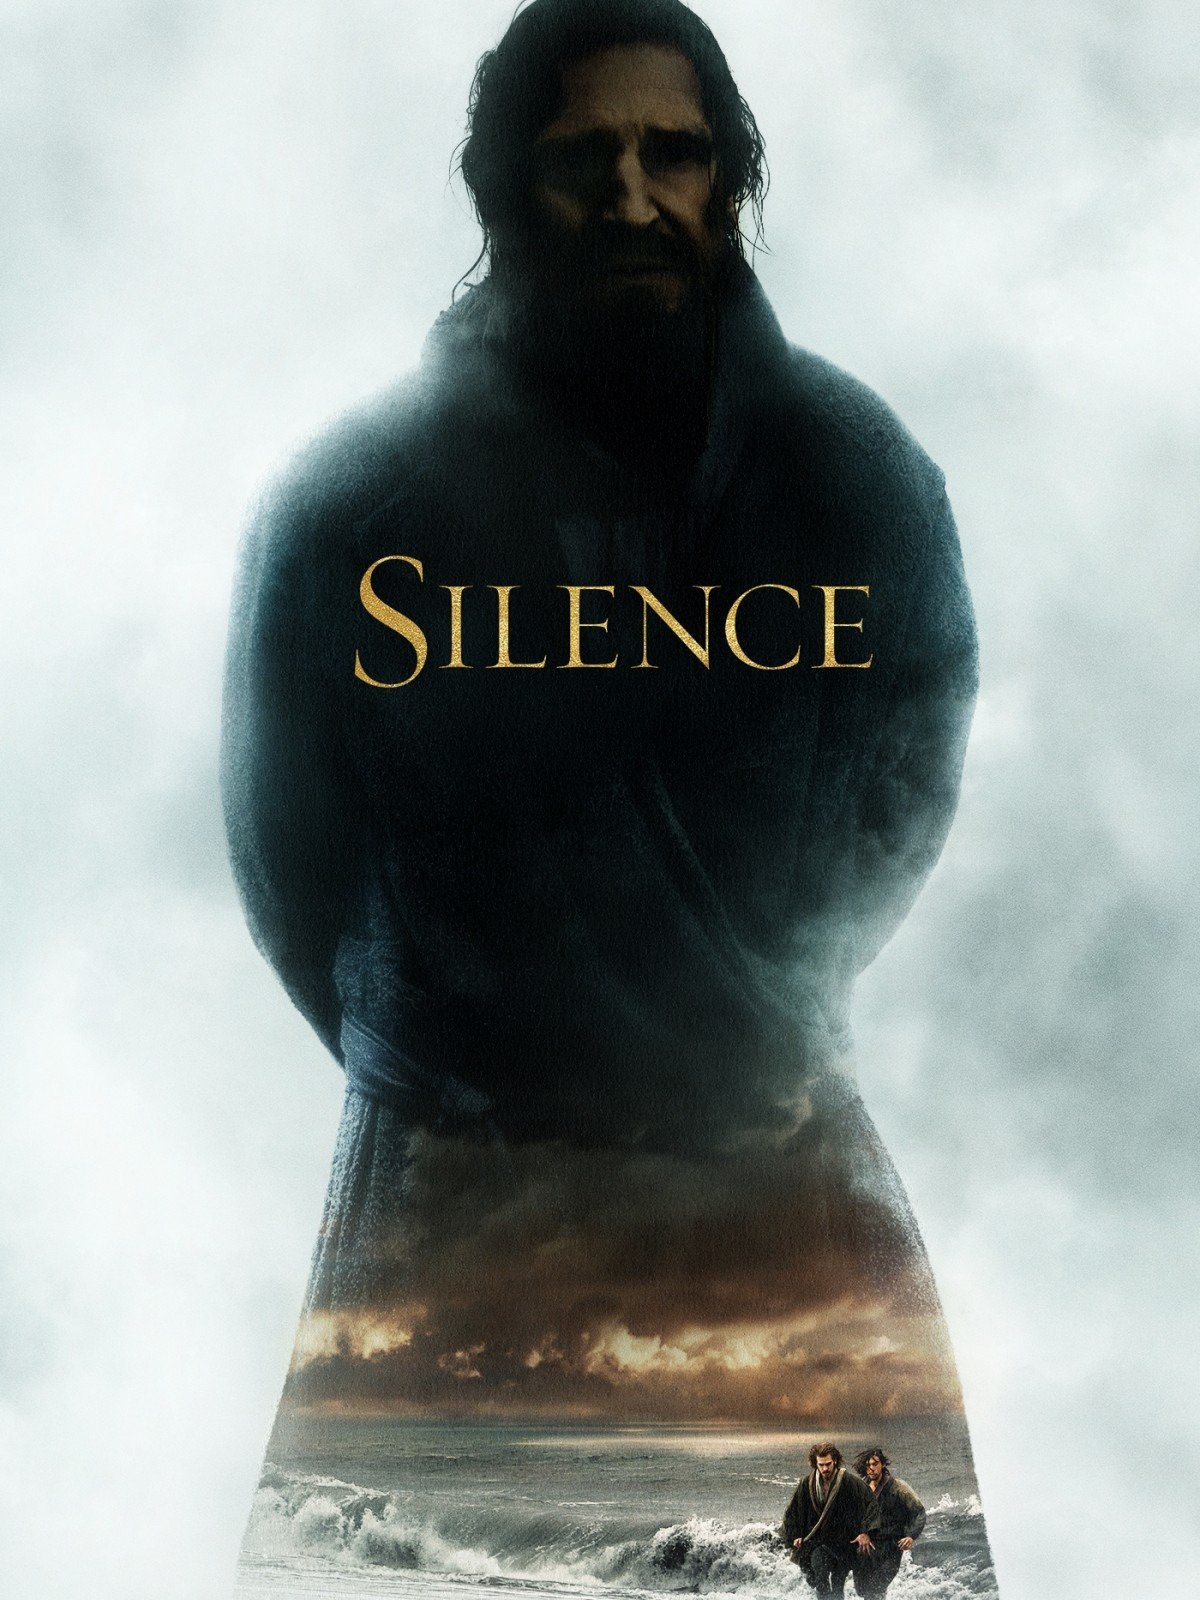 Silence (2017) - Amazon Prime Instant Video